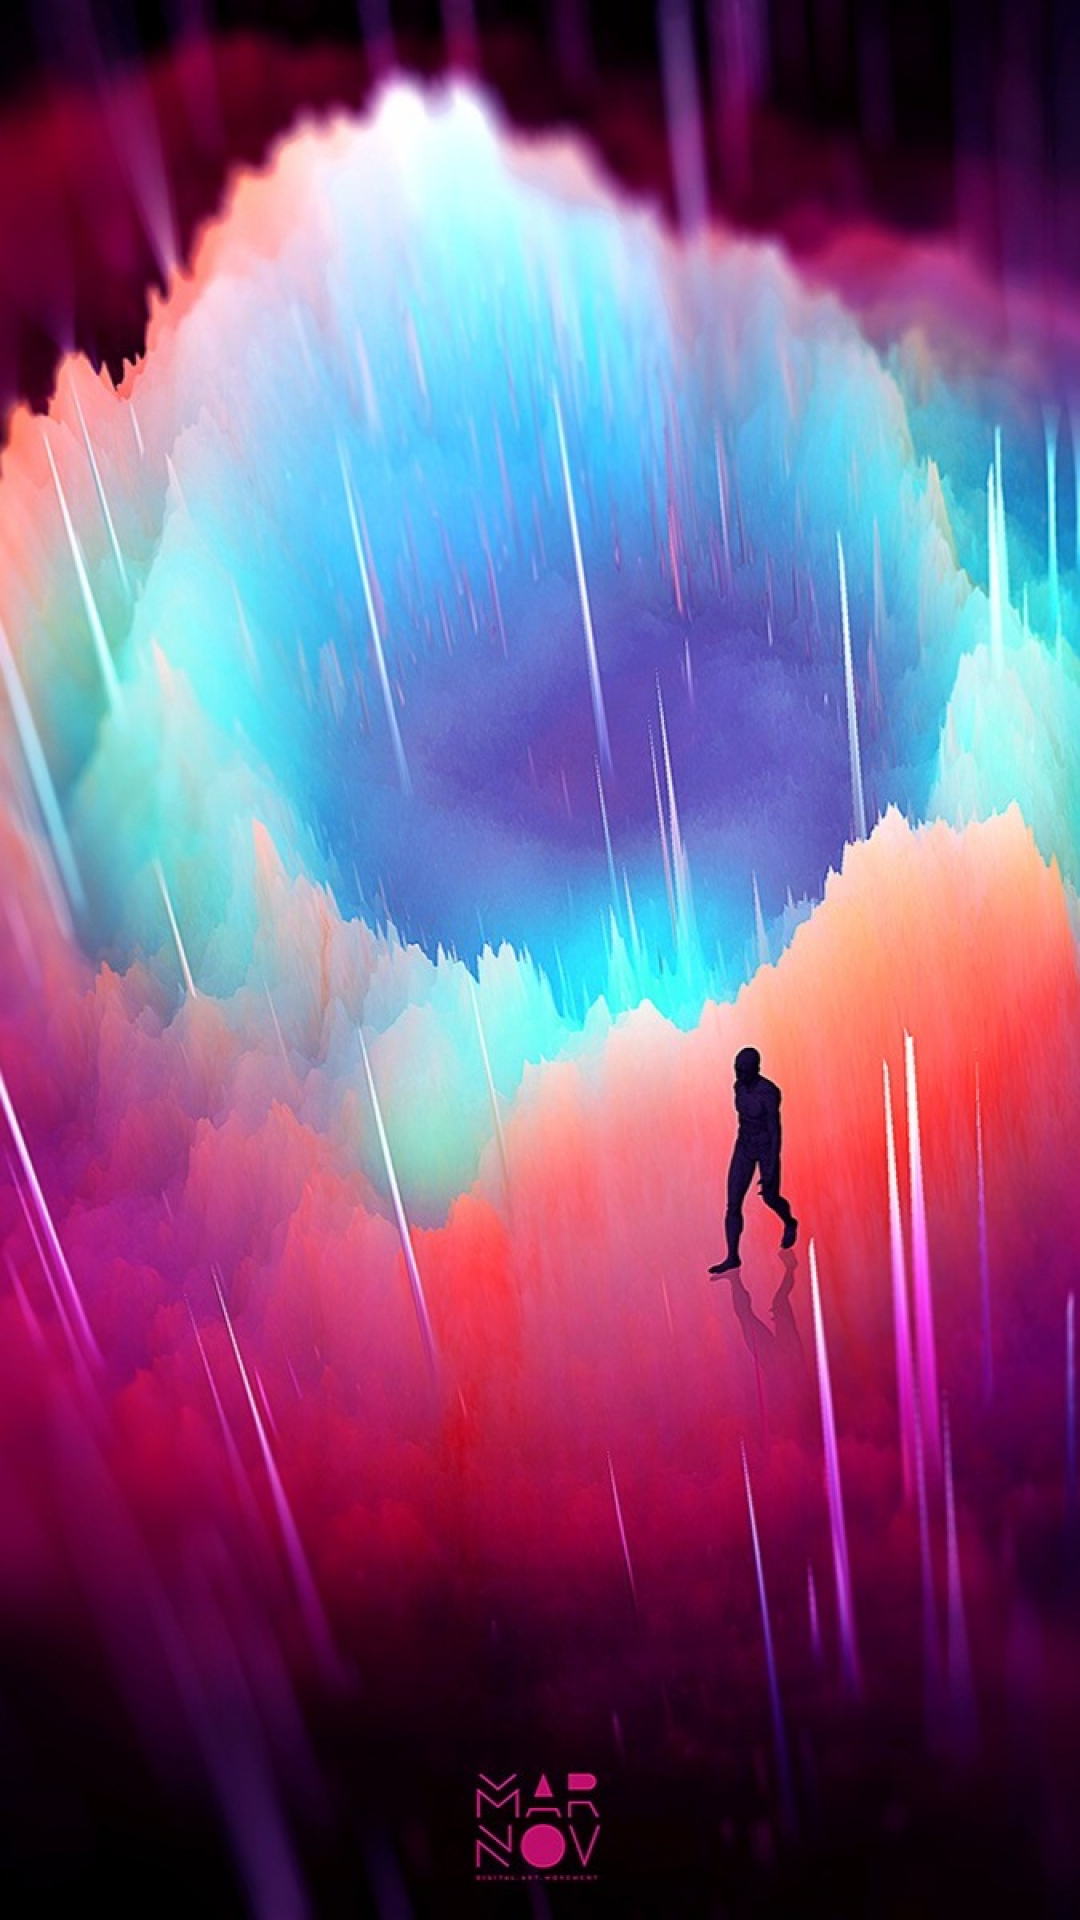 Girl Wallpaper For Iphone 6 Plus Cosmic Wallpaper For Iphone X 8 7 6 Free Download On